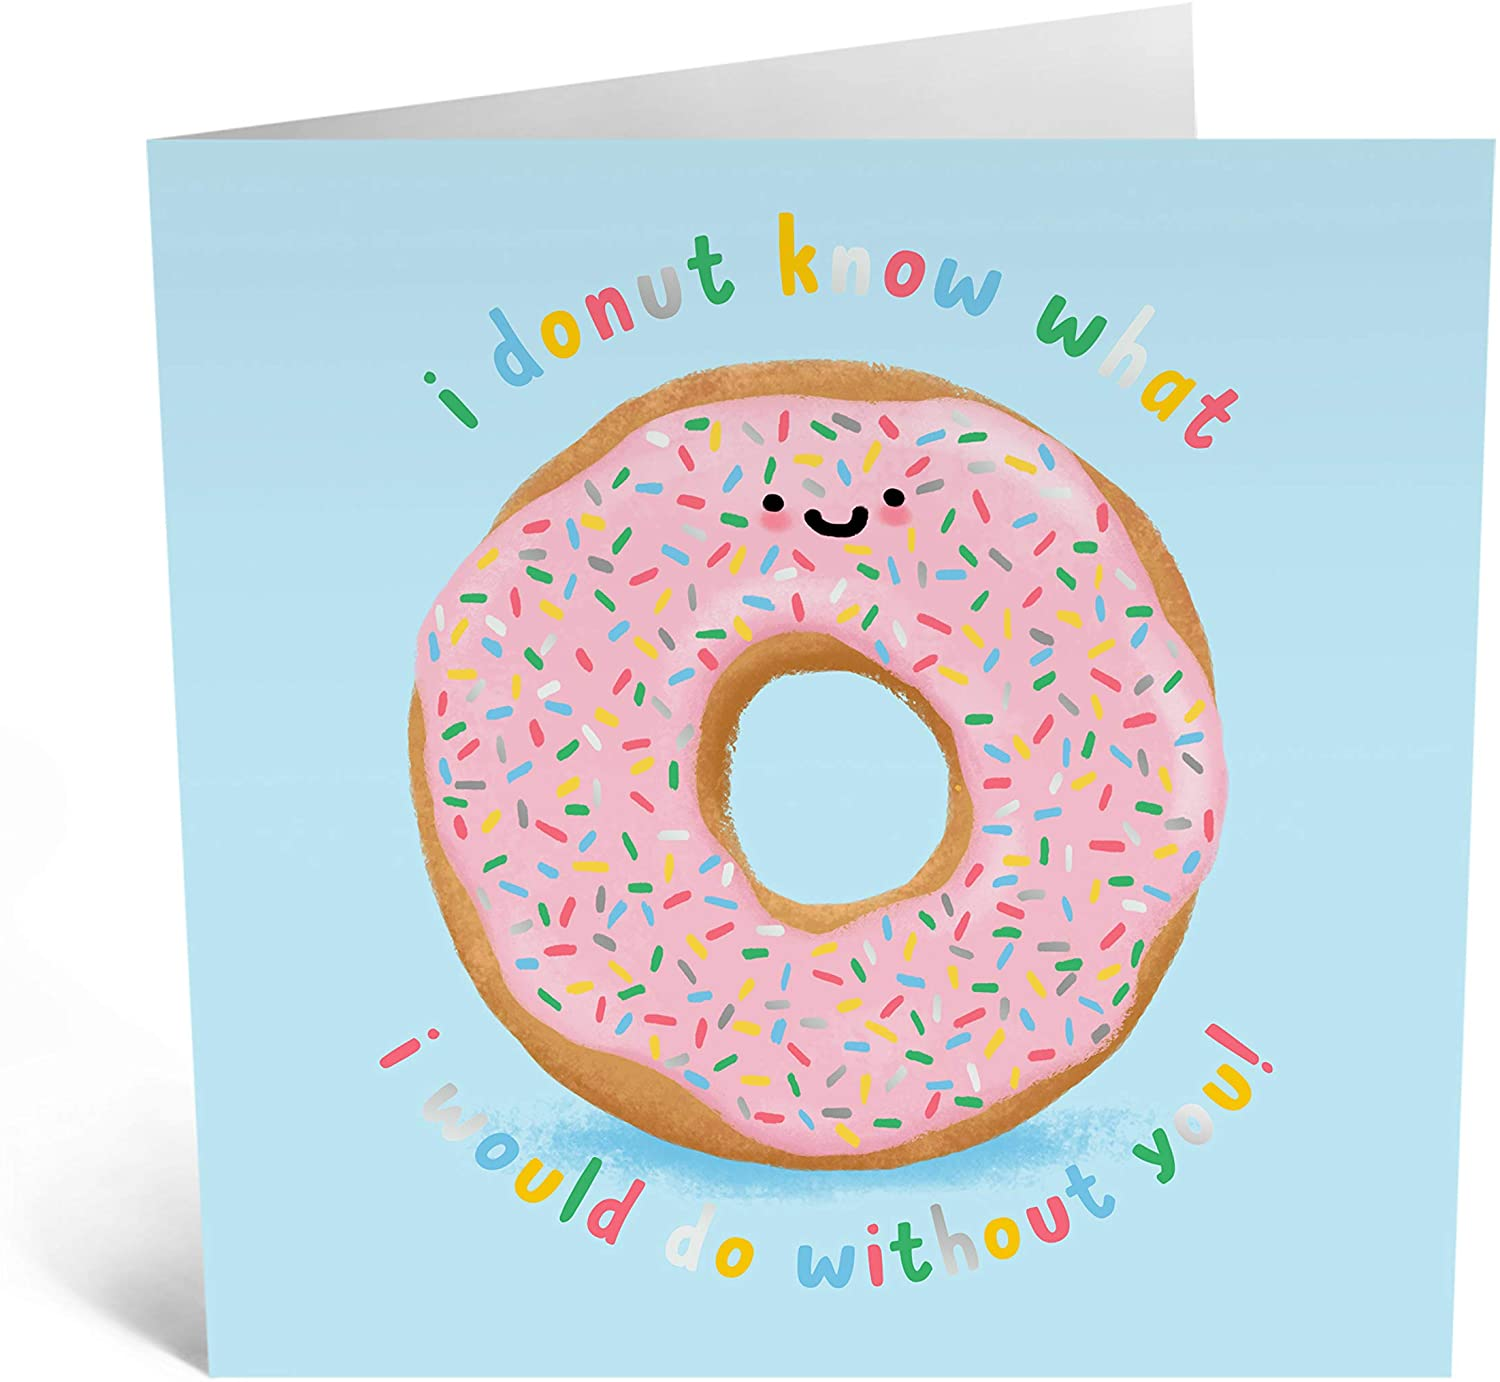 """Central 23 - Cute Anniversary Card - """"I Donut Know What I Would Do Without You"""" - Funny Pun Card - Wife Husband Boyfriend Girlfriend Best Friend - Comes With Fun Stickers"""